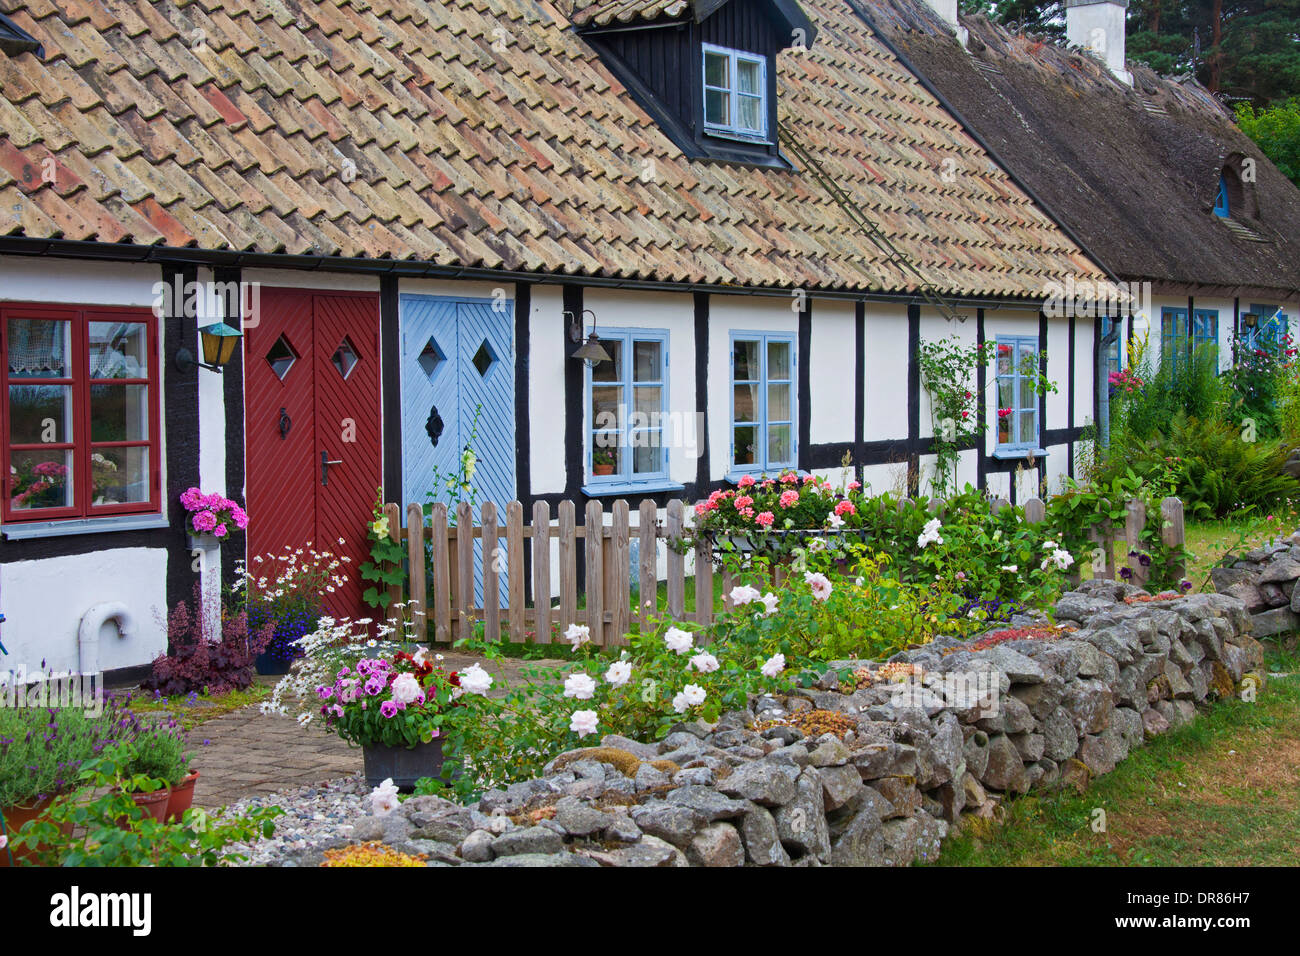 Front yard gardens - Old Tradionally Houses With Front Yards In Summer At Kn B Ckshusen Sterlen Sk Ne Scania